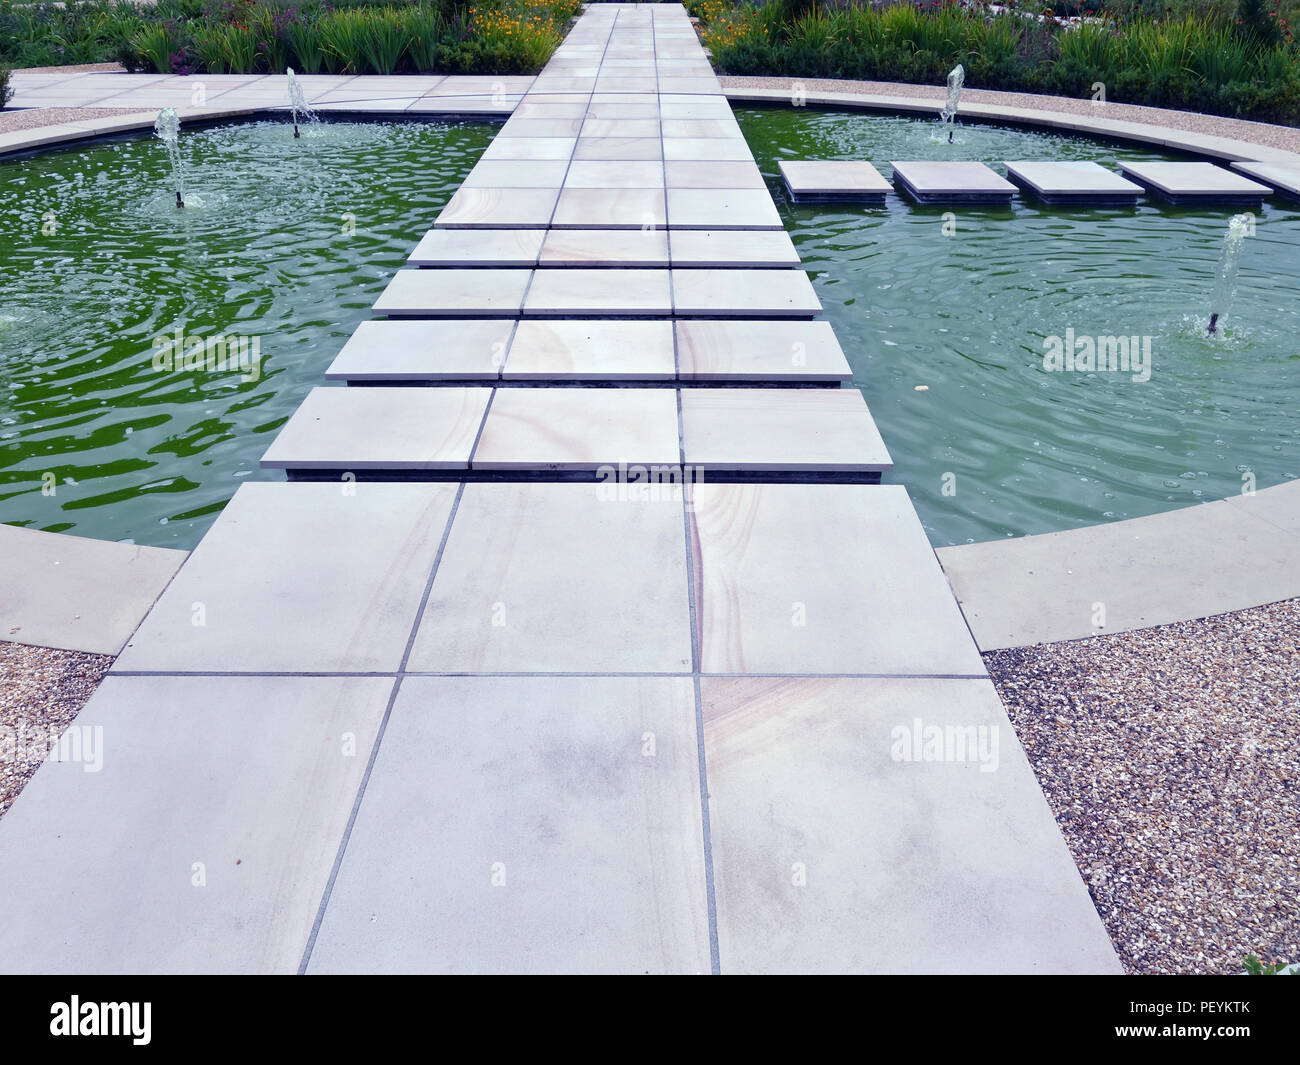 Sharp clean cut stone slabs and various formal pathways & decorative pond area in a large private country house garden in England Property released - Stock Image